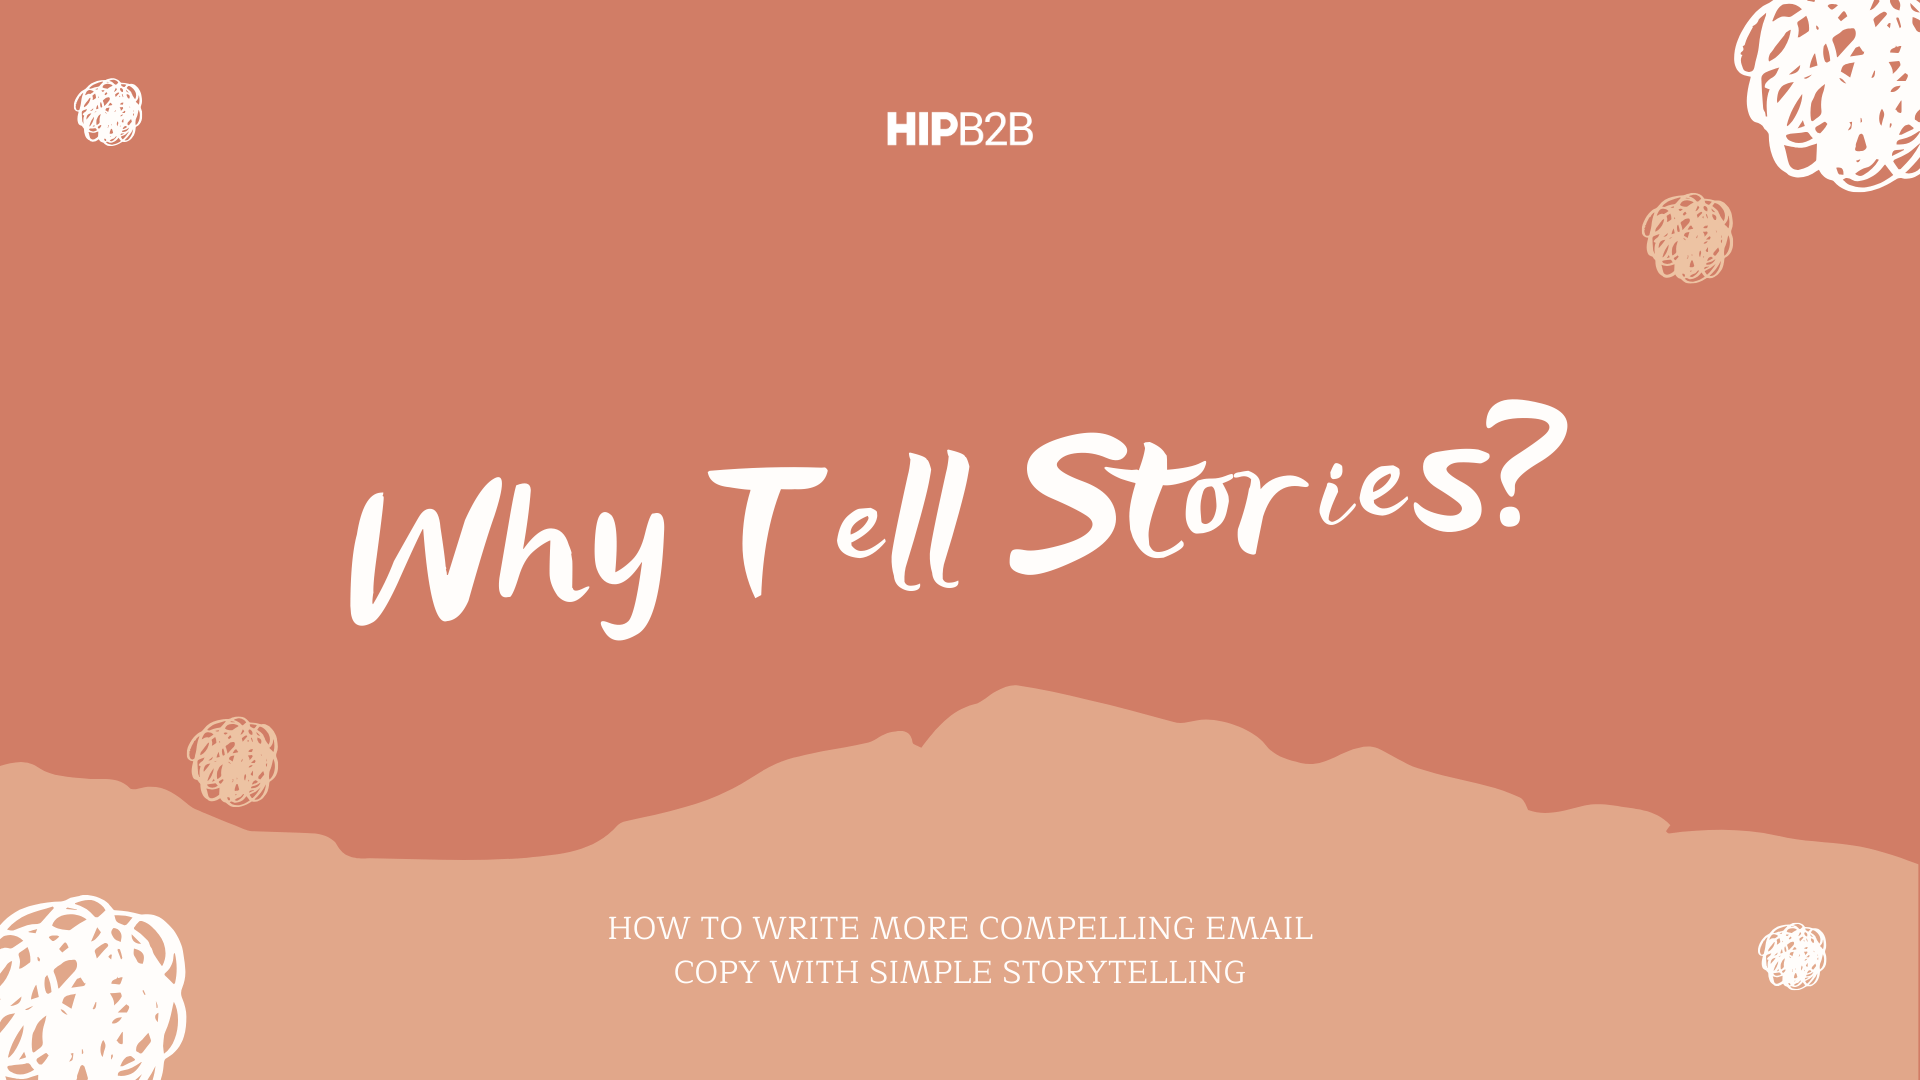 Why Tell Stories